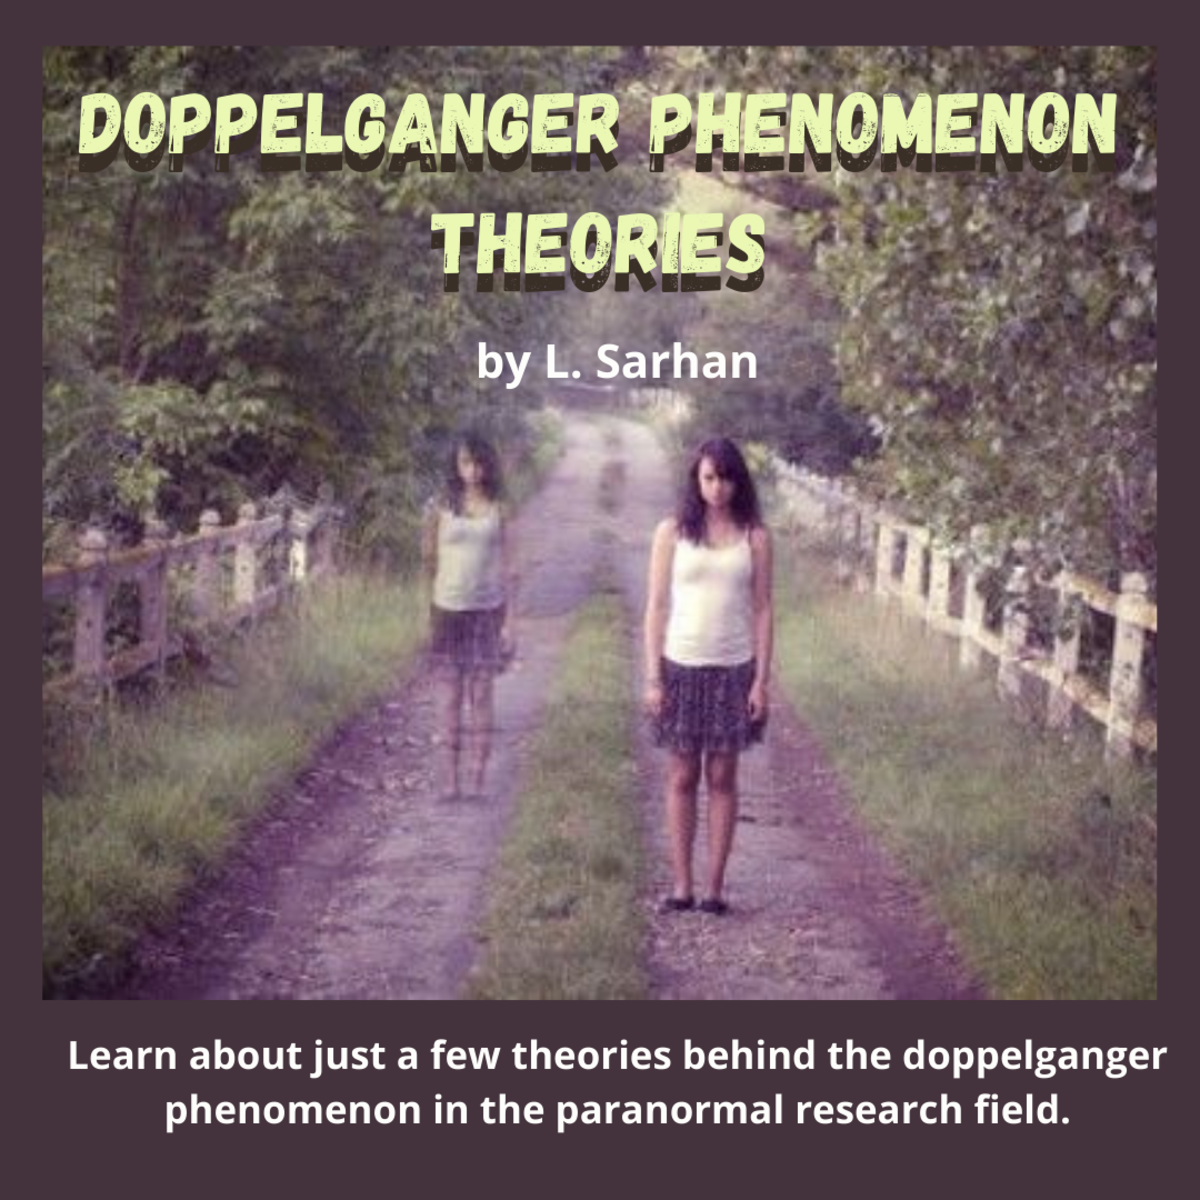 Doppelganger Phenomenon Theories